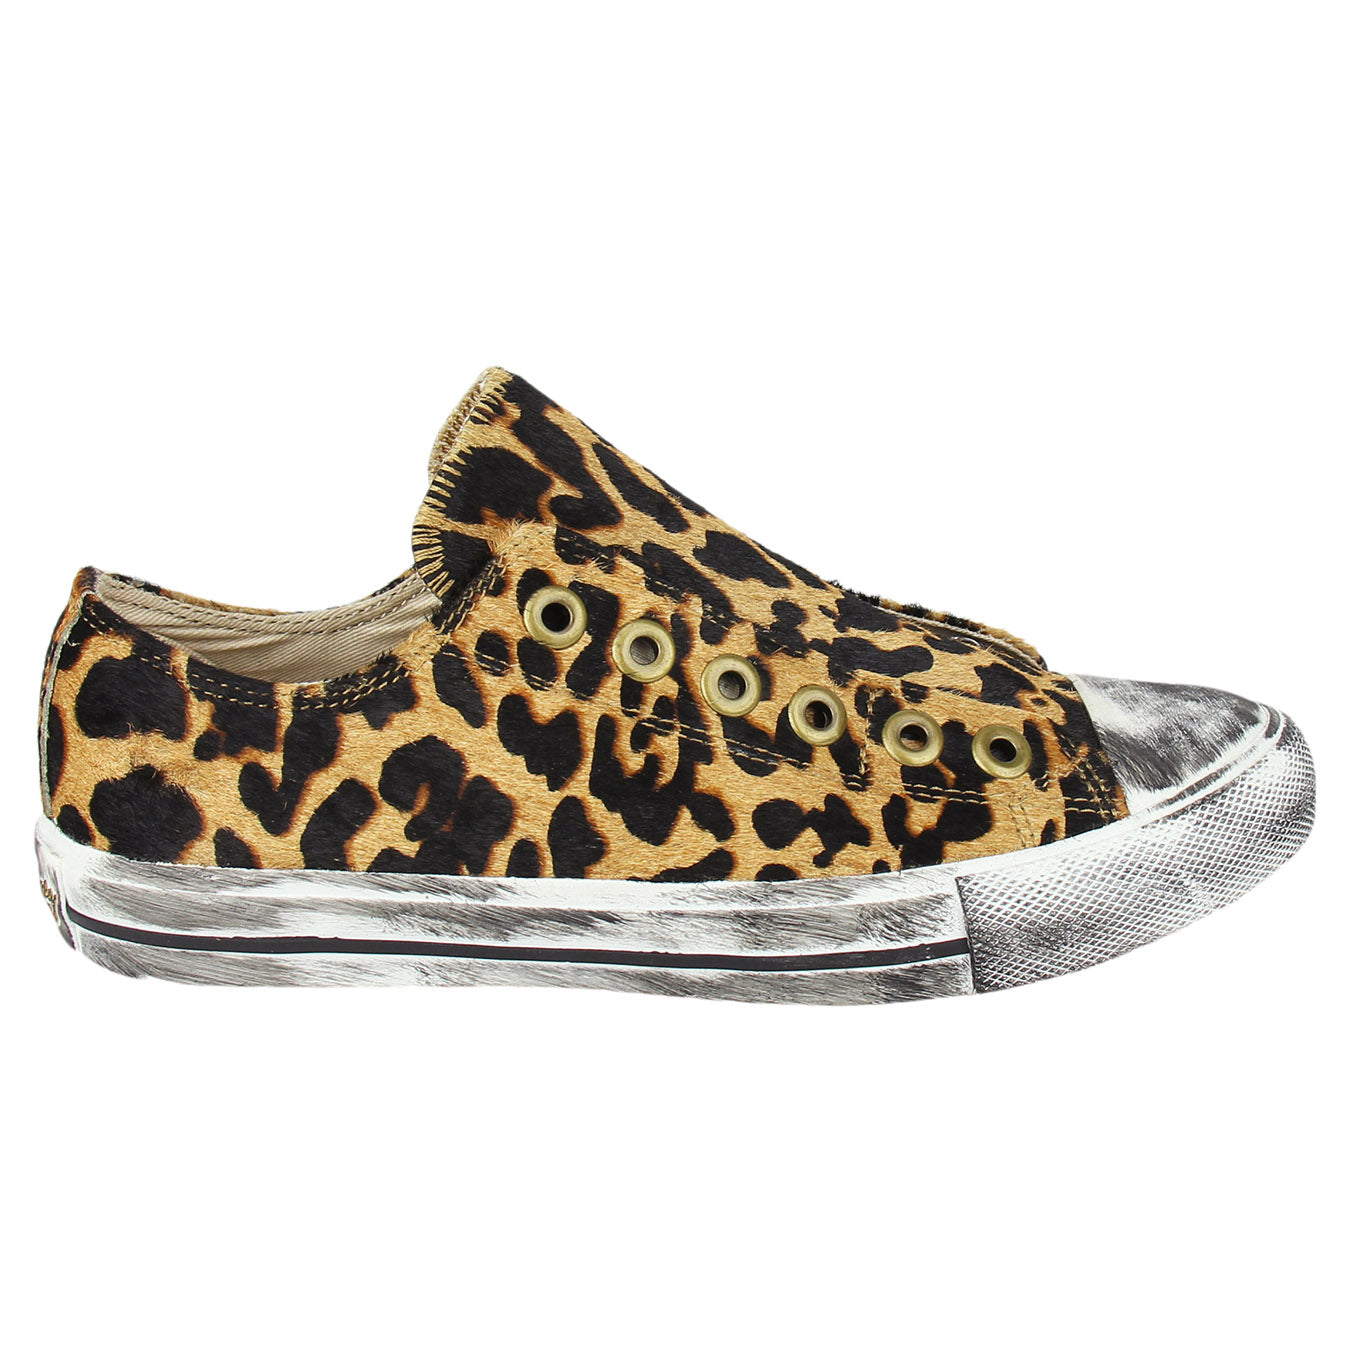 Naughty_Monkey_sport, athleisure, pony-hair_sneaker_leopard